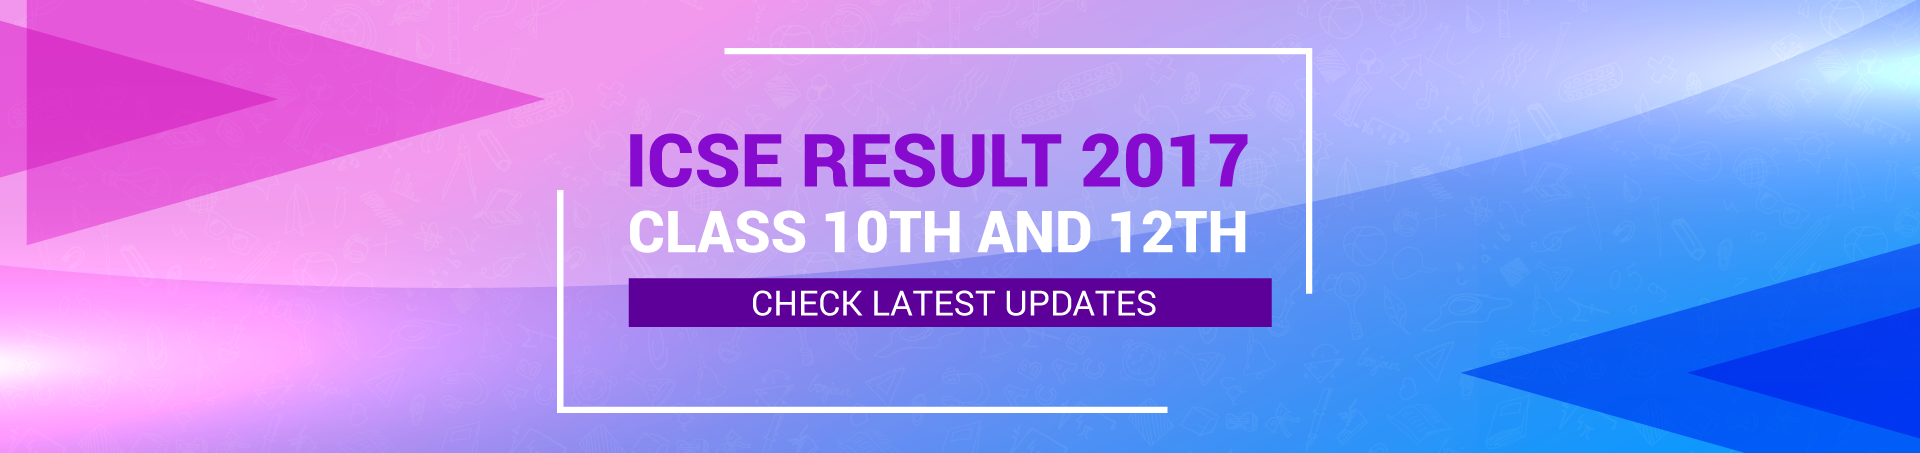 CBSE-Result-2017-Class-10th-and-12th3